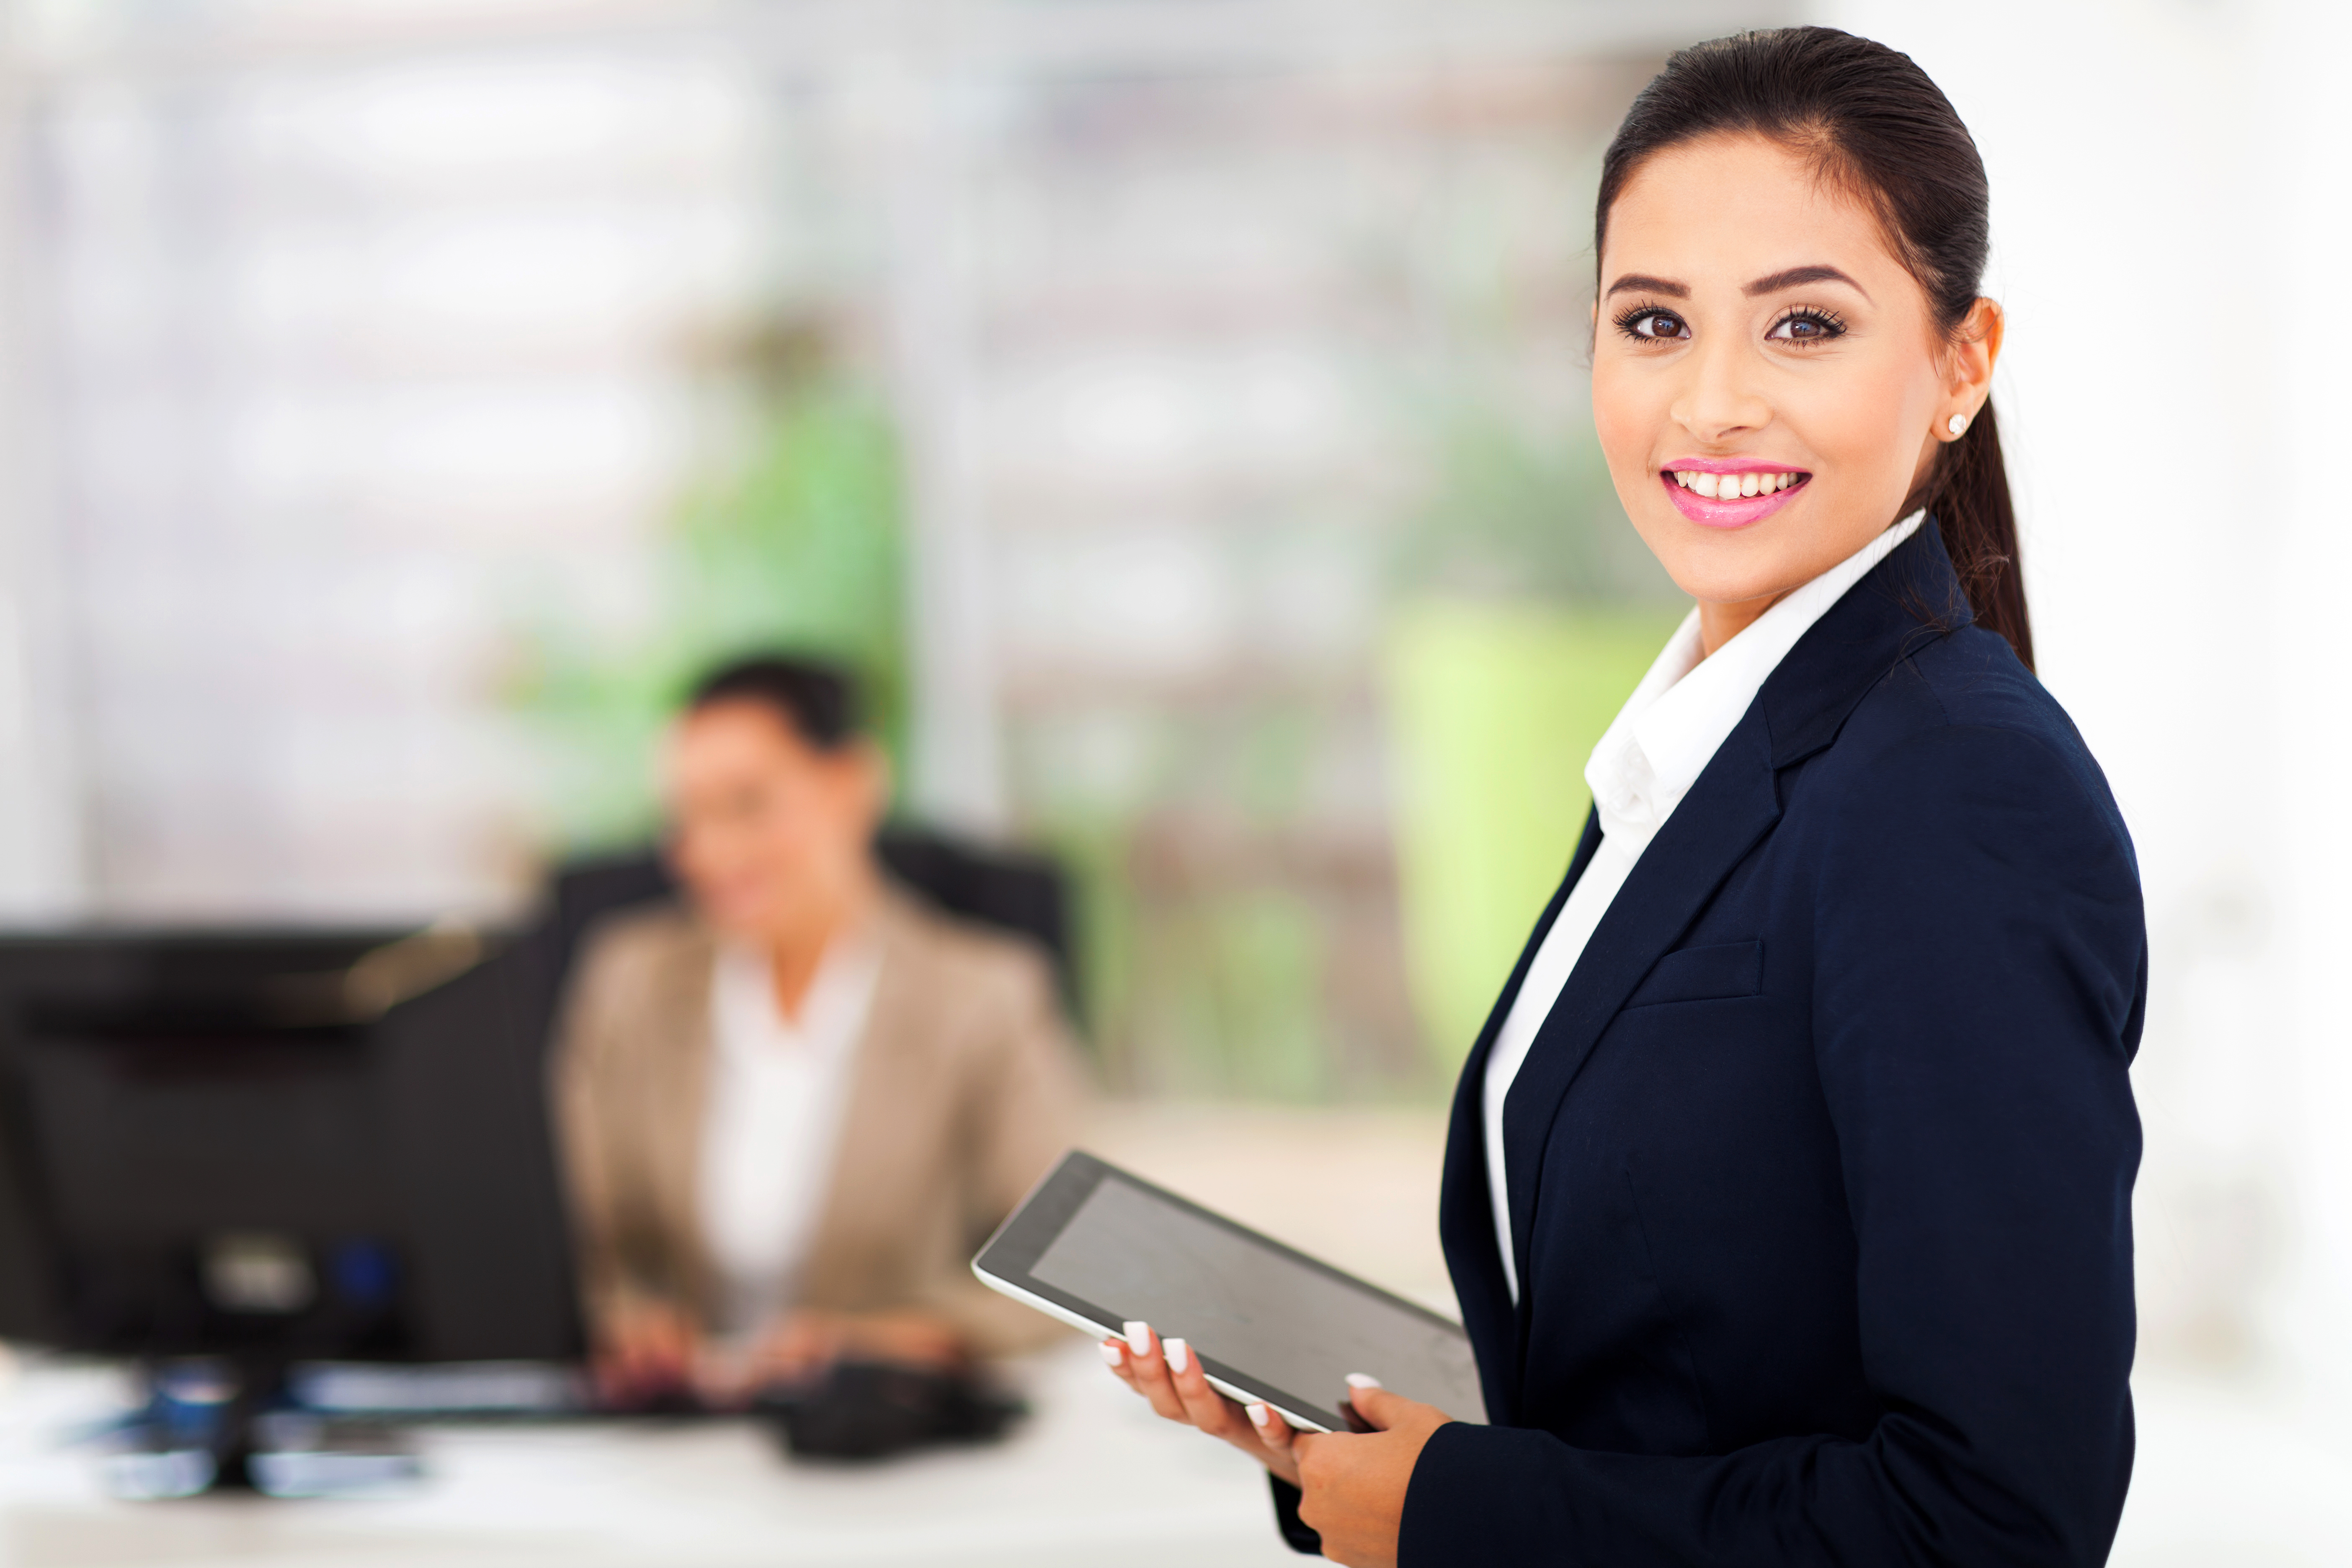 successful women hr in india Male hr managers make about 40 percent more than female hr managers, according to the 2014 us department of labor statistics, and in 2013, only 11 out of the 50 highest-paid hr leaders were female despite the fact that it is a female-dominated profession.